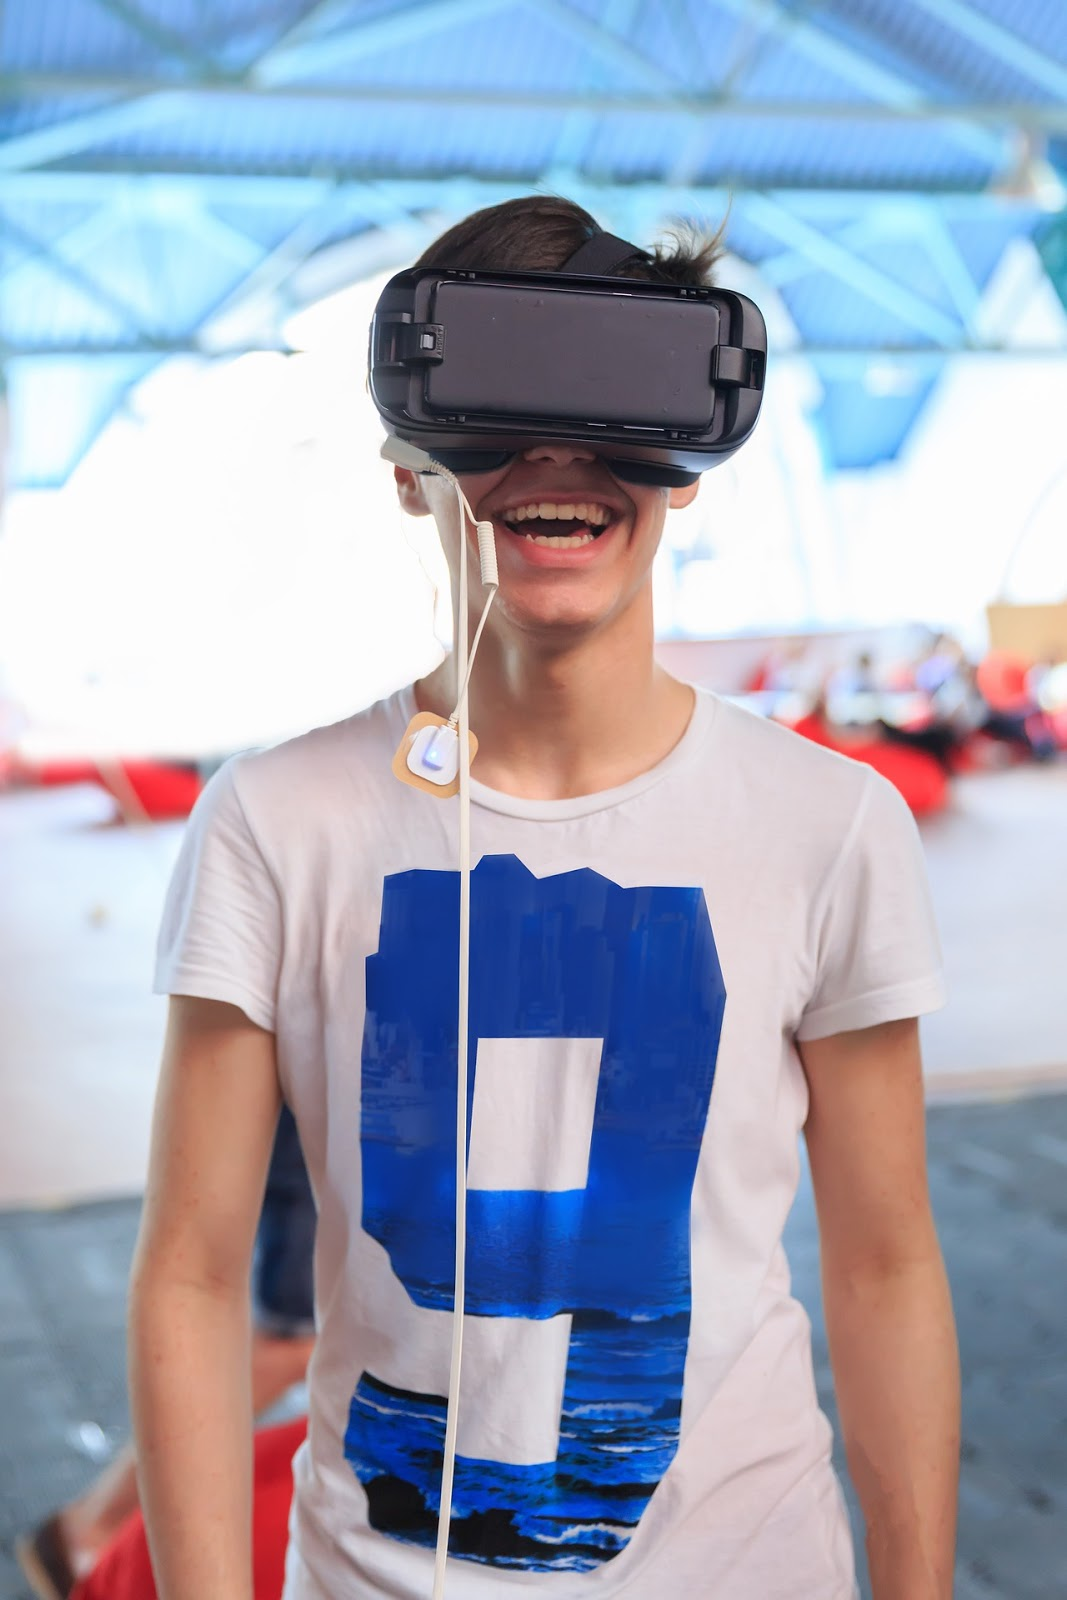 happy guy experiencing augmented reality